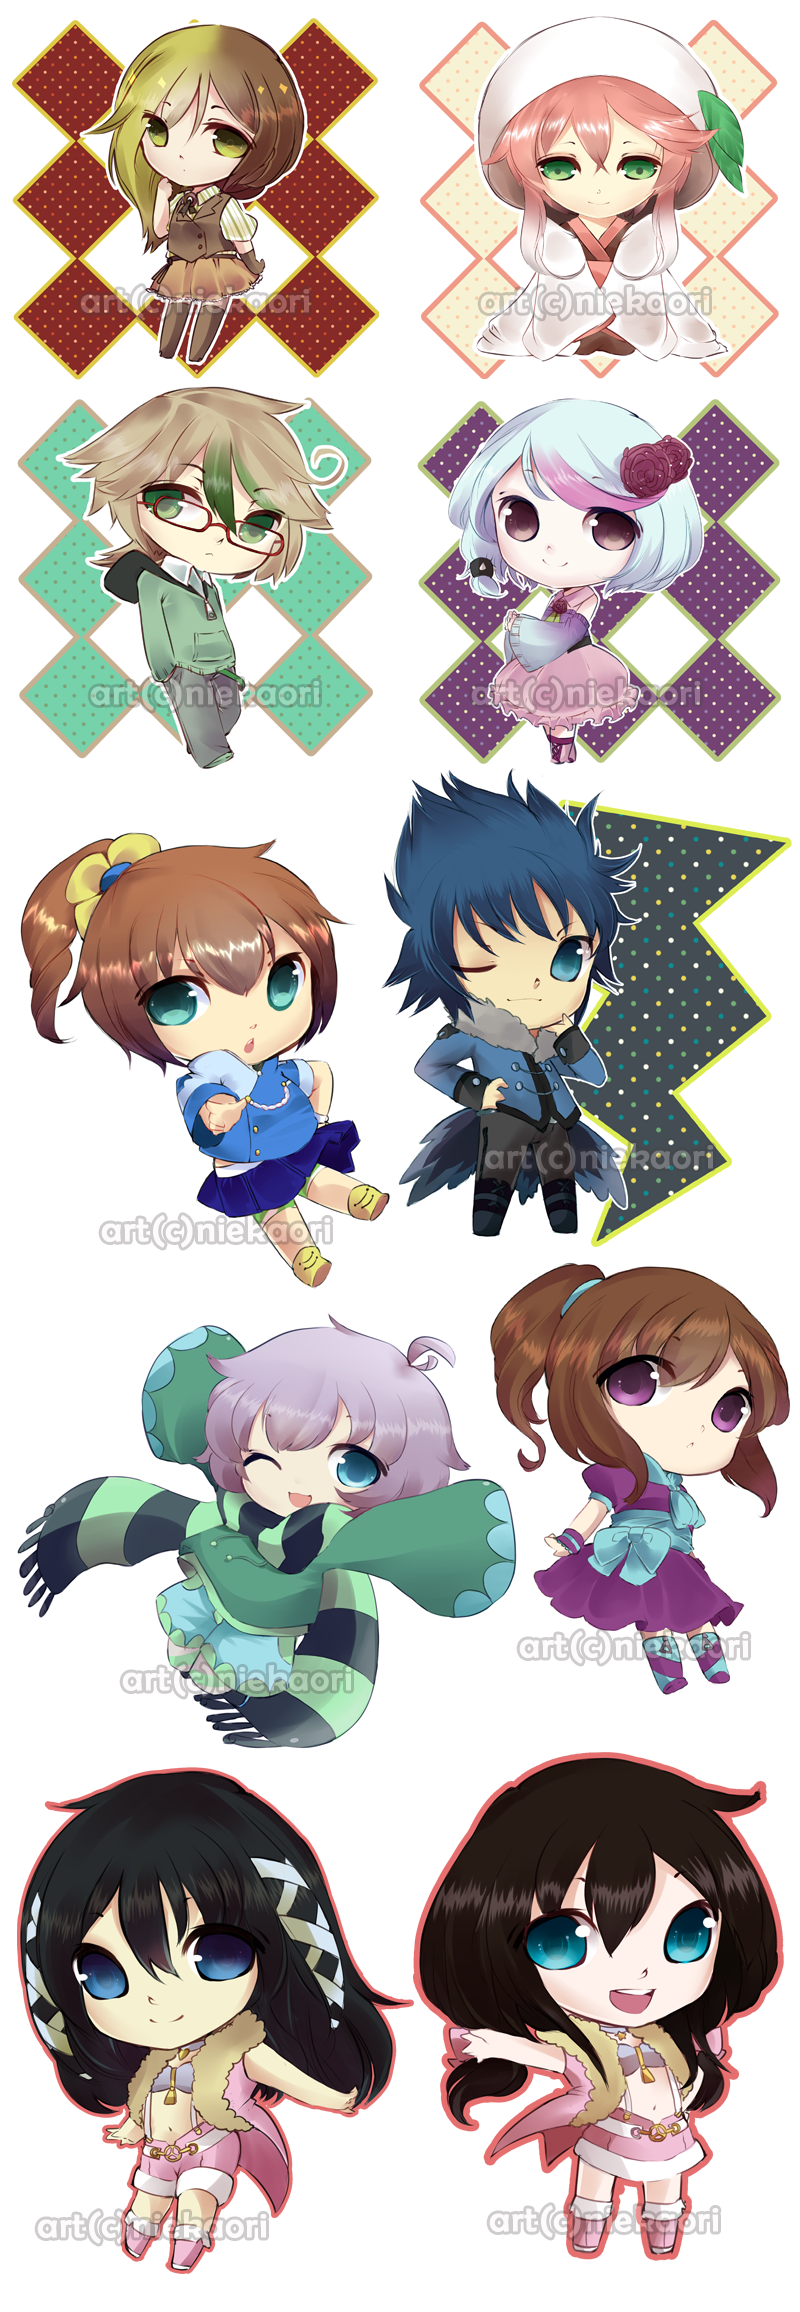 lineplay_chibi_commission_by_niekaori-d7